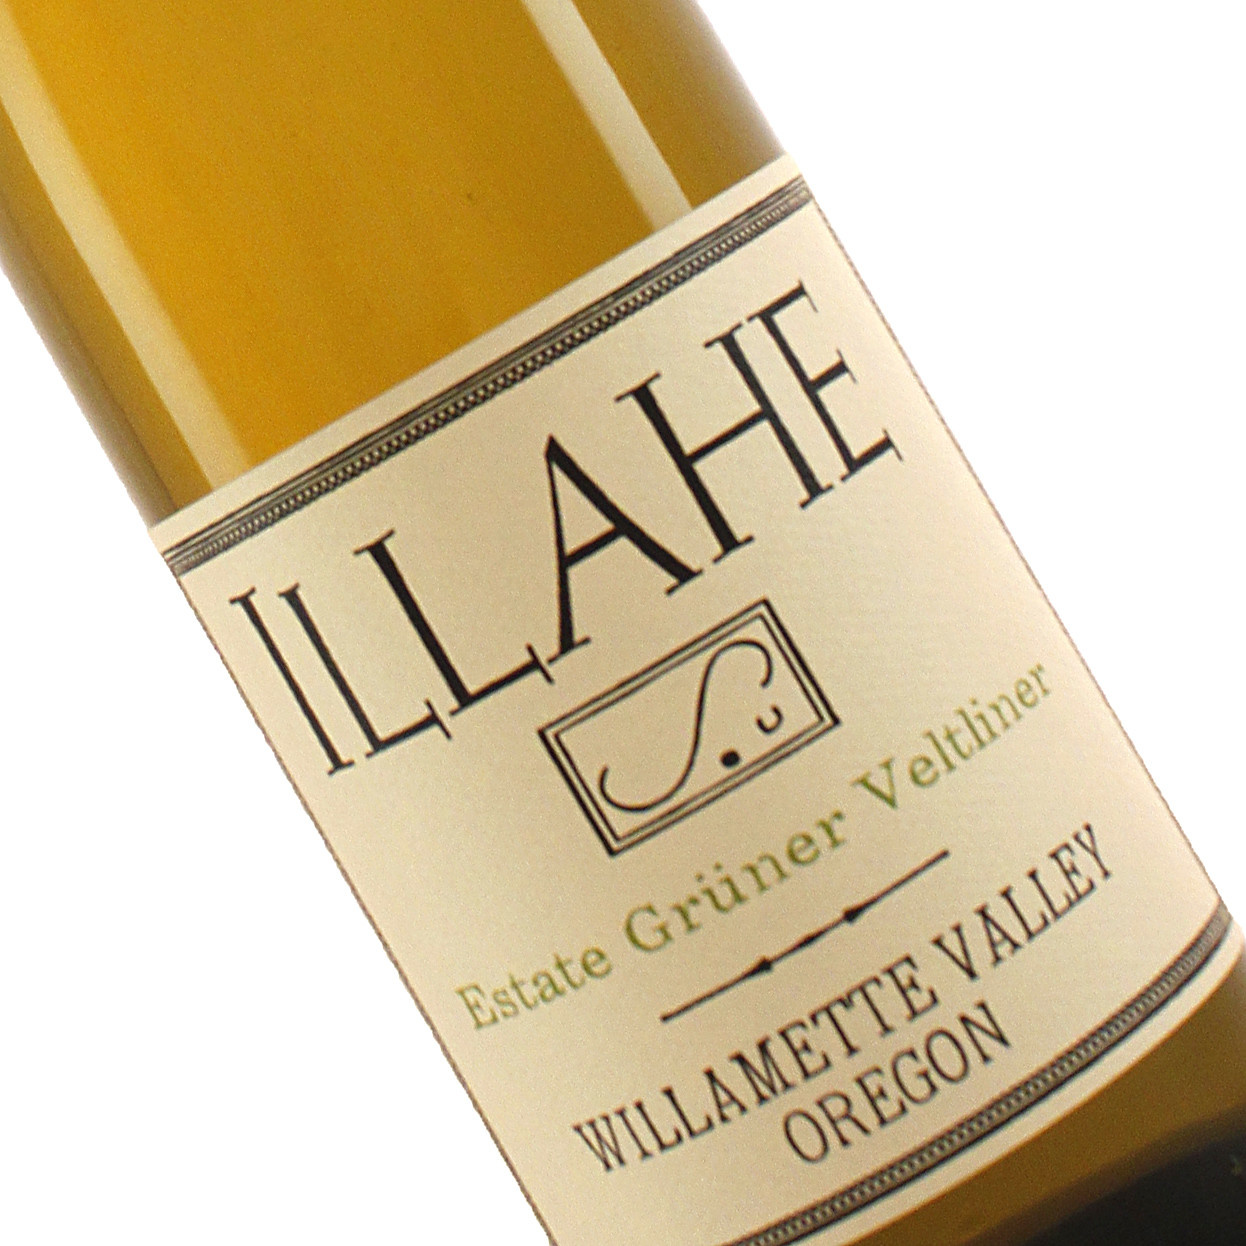 Illahe 2017 Gruner Veltliner, Willamette Valley